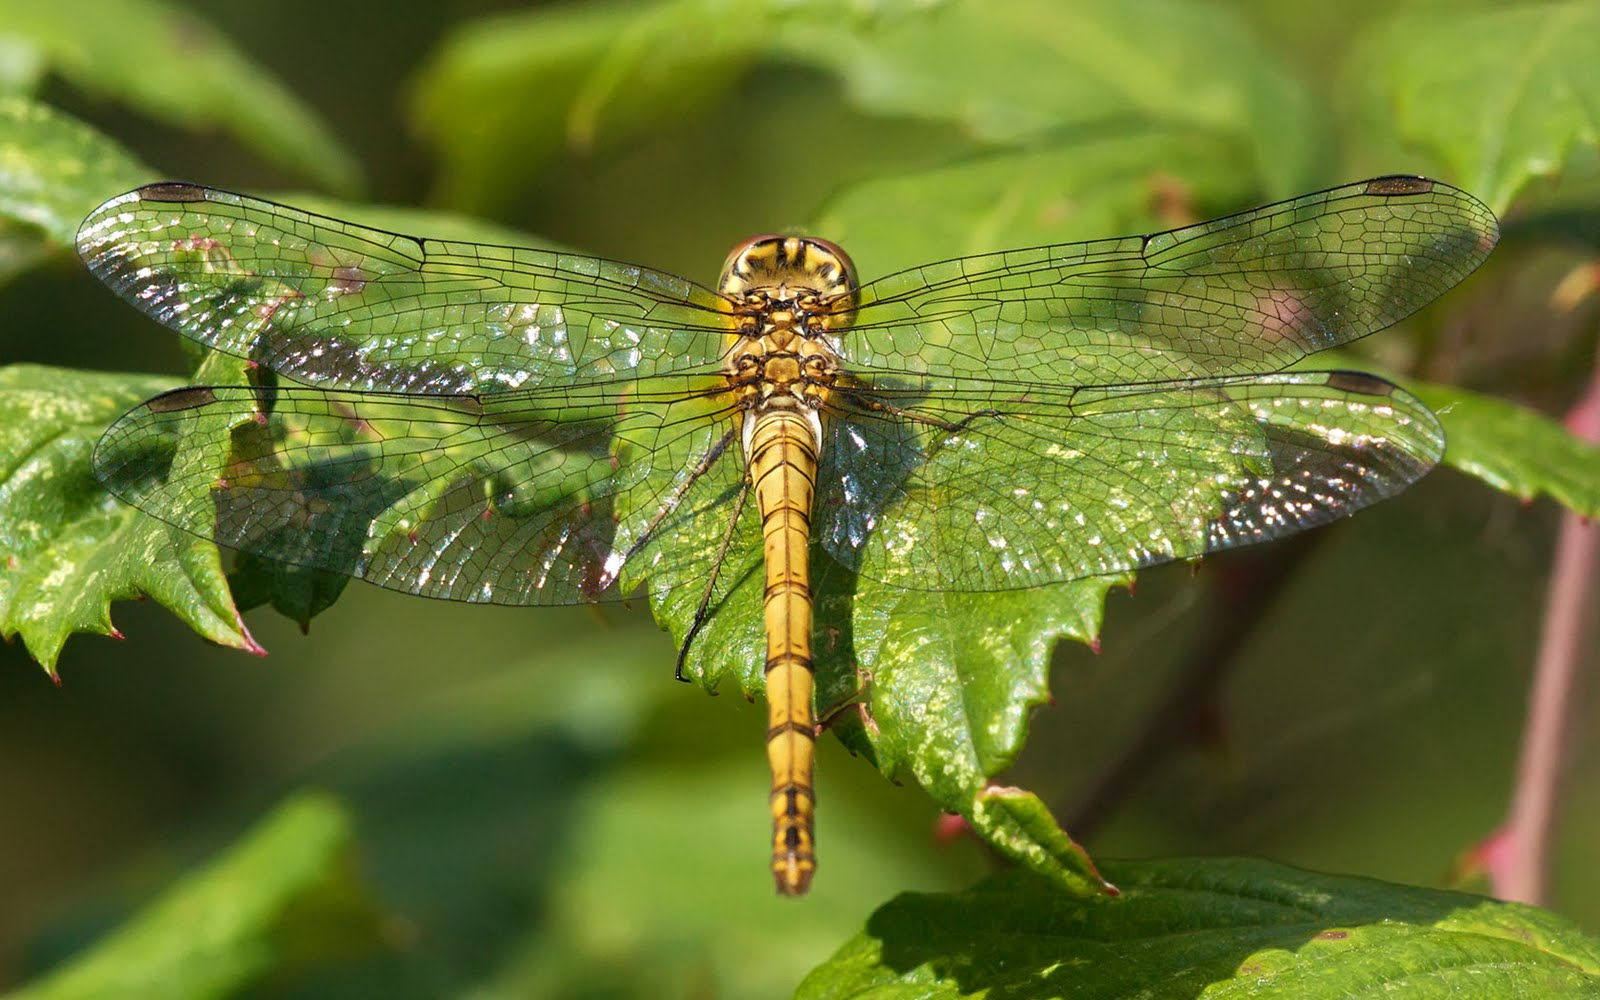 Cute Horse Wallpapers Dragonfly Wallpapers Pets Cute And Docile